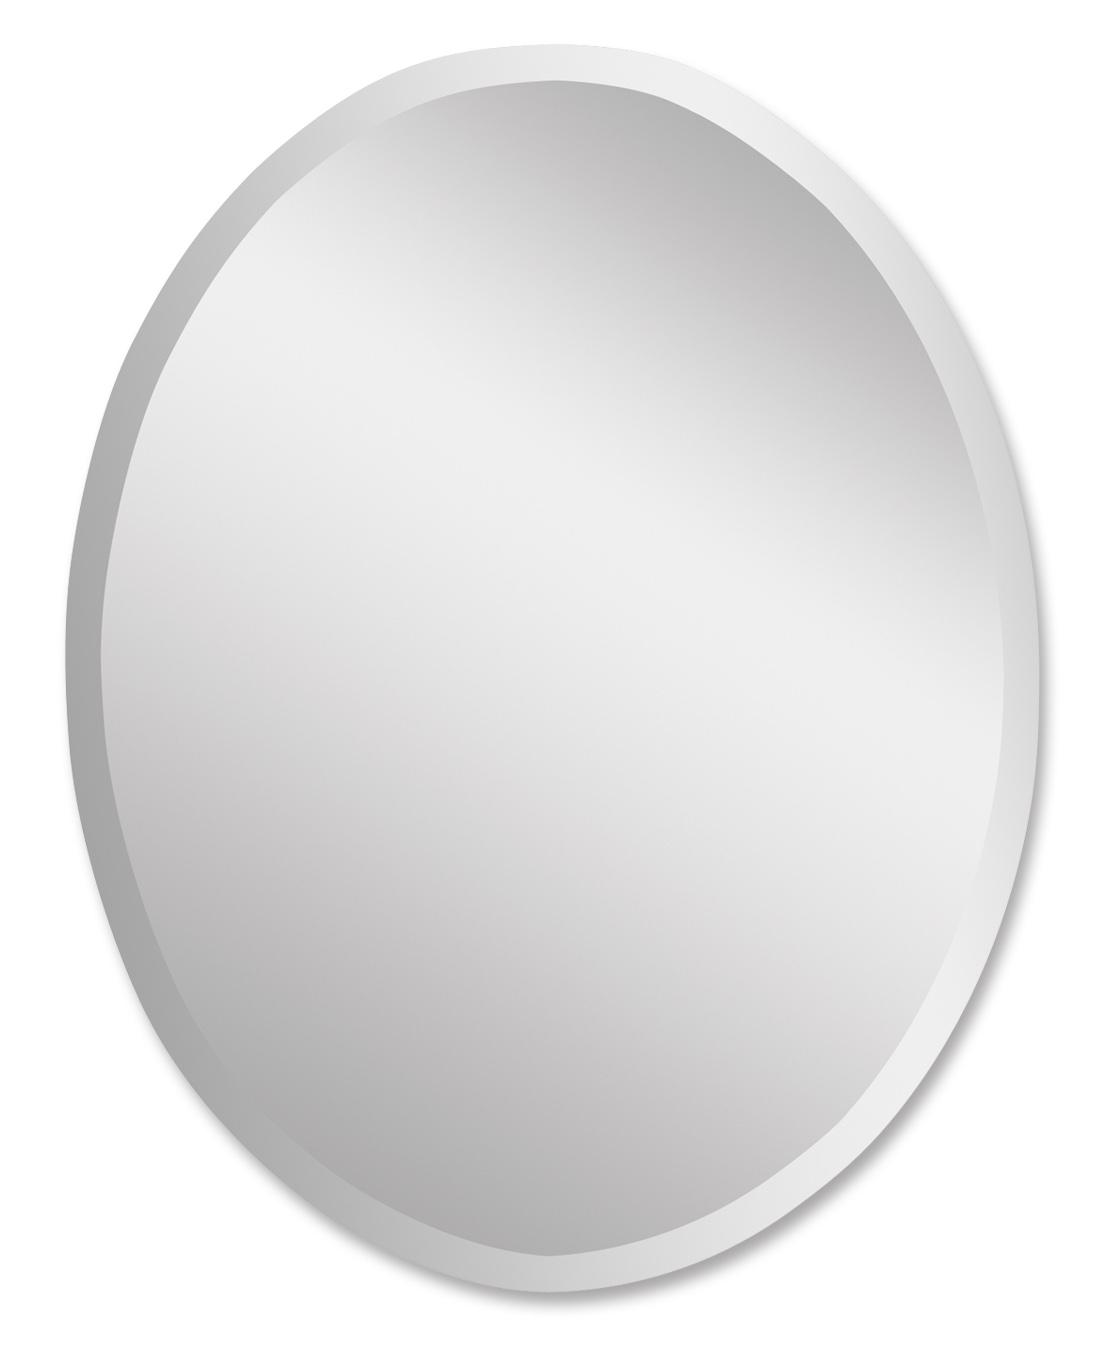 Uttermost Mirrors Vanity Oval - Item Number: 19580 B